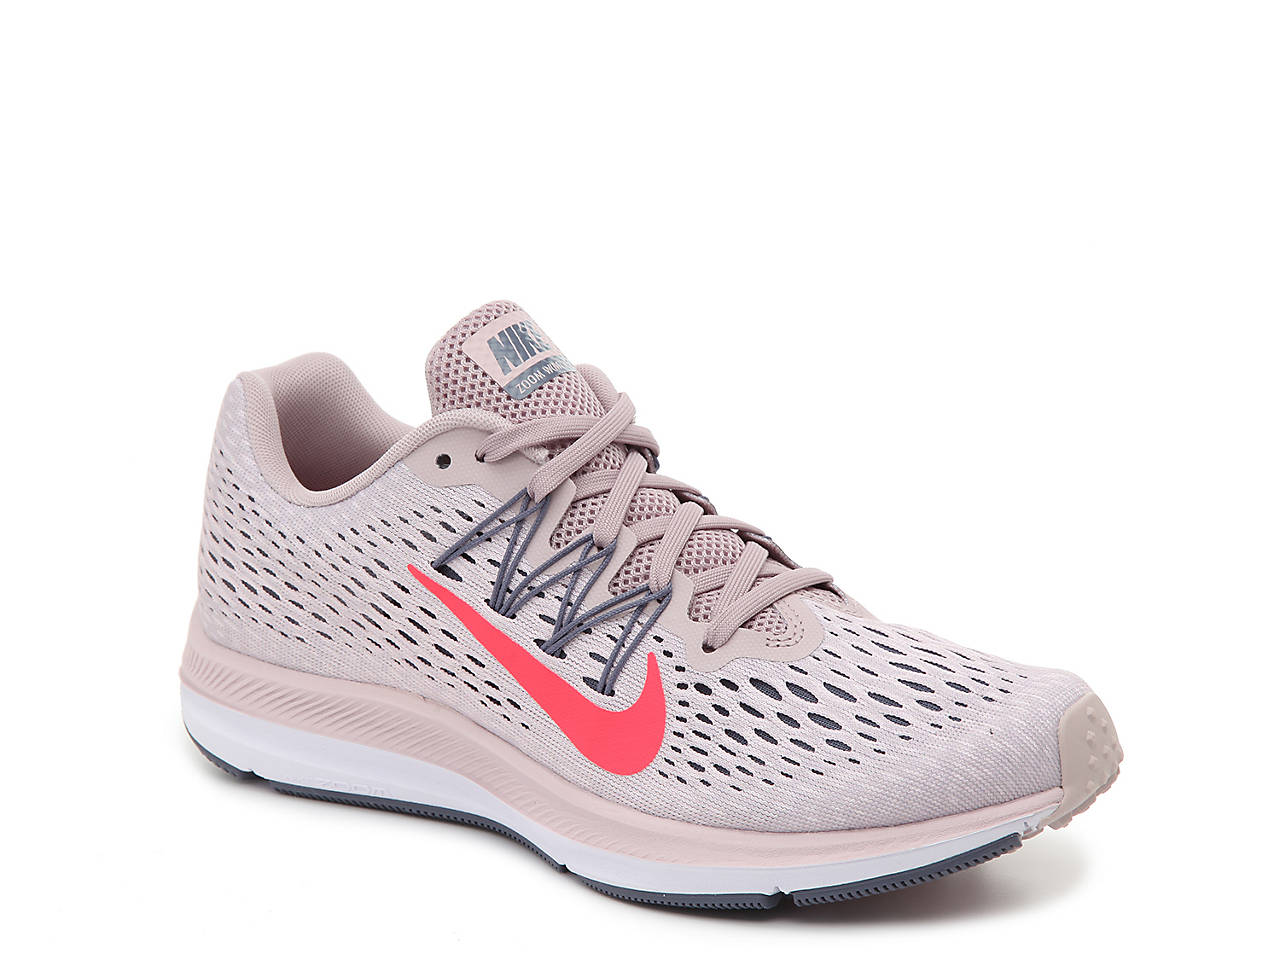 Nike Zoom Winflo 5 Running Shoe - Women s Women s Shoes  476b5a333